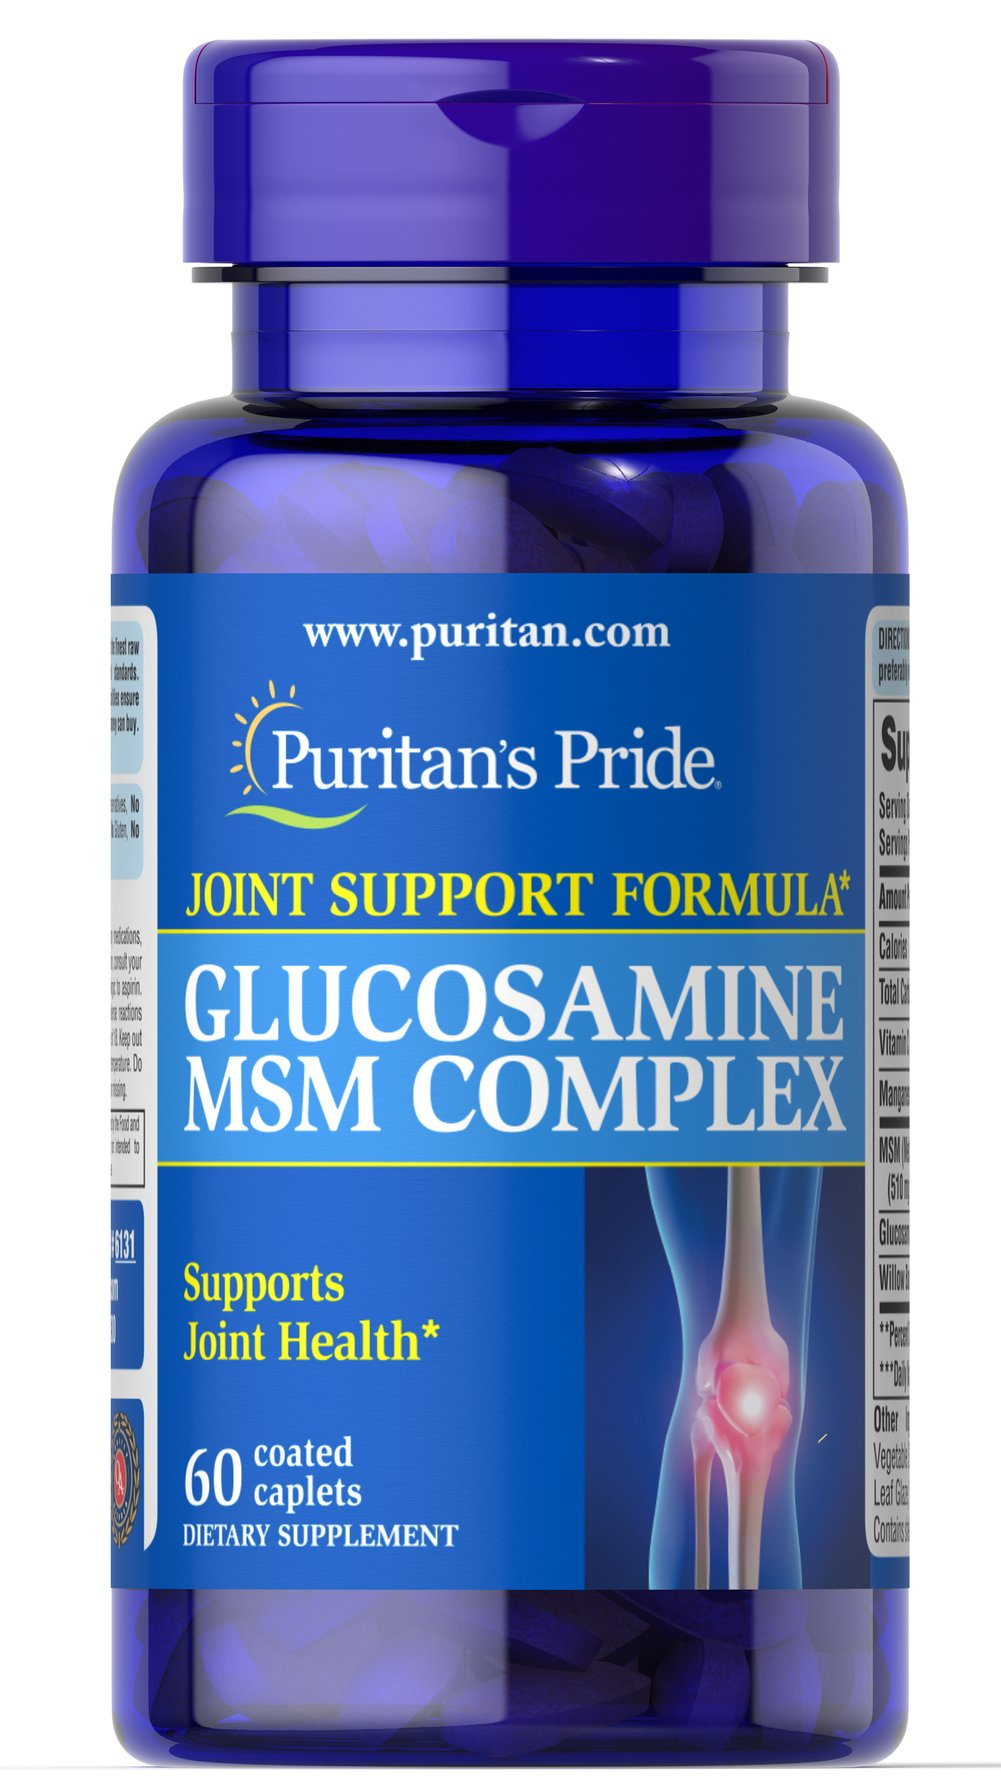 Glucosamine MSM Complex 500mg/333 mg <p>Our Glucosamine MSM Complex is an excellent choice for anyone seeking a well-rounded formula containing two distinct joint support ingredients.** Three caplets provide Glucosamine Sulfate (1000 mg), MSM (1500 mg), Vitamin C (60 mg), Manganese (2 mg) and White Willow (50 mg).</p><p>WARNING: Do not consume product if you have an allergy to shellfish.</p><p>Individual Results May Vary.</p><p></p> 60 Caplets 500